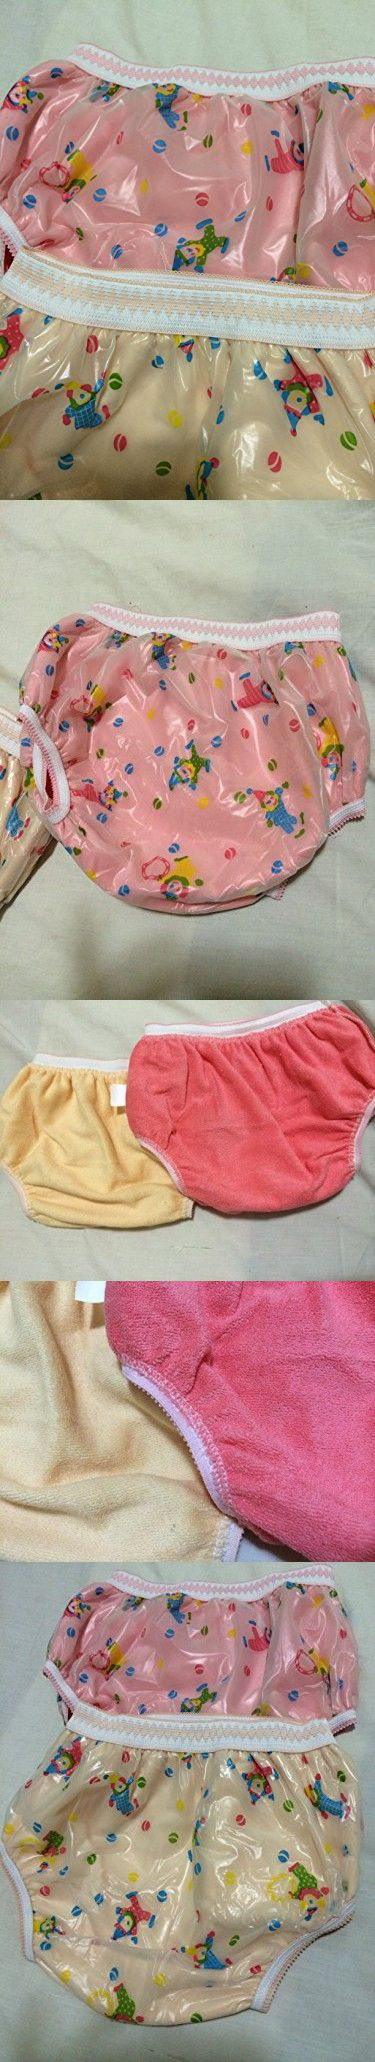 Cloth Diaper Potty Training Kids Underpants Pull up Cotton Plastic Panty Mess Free Waterproof Reusable Set of Two